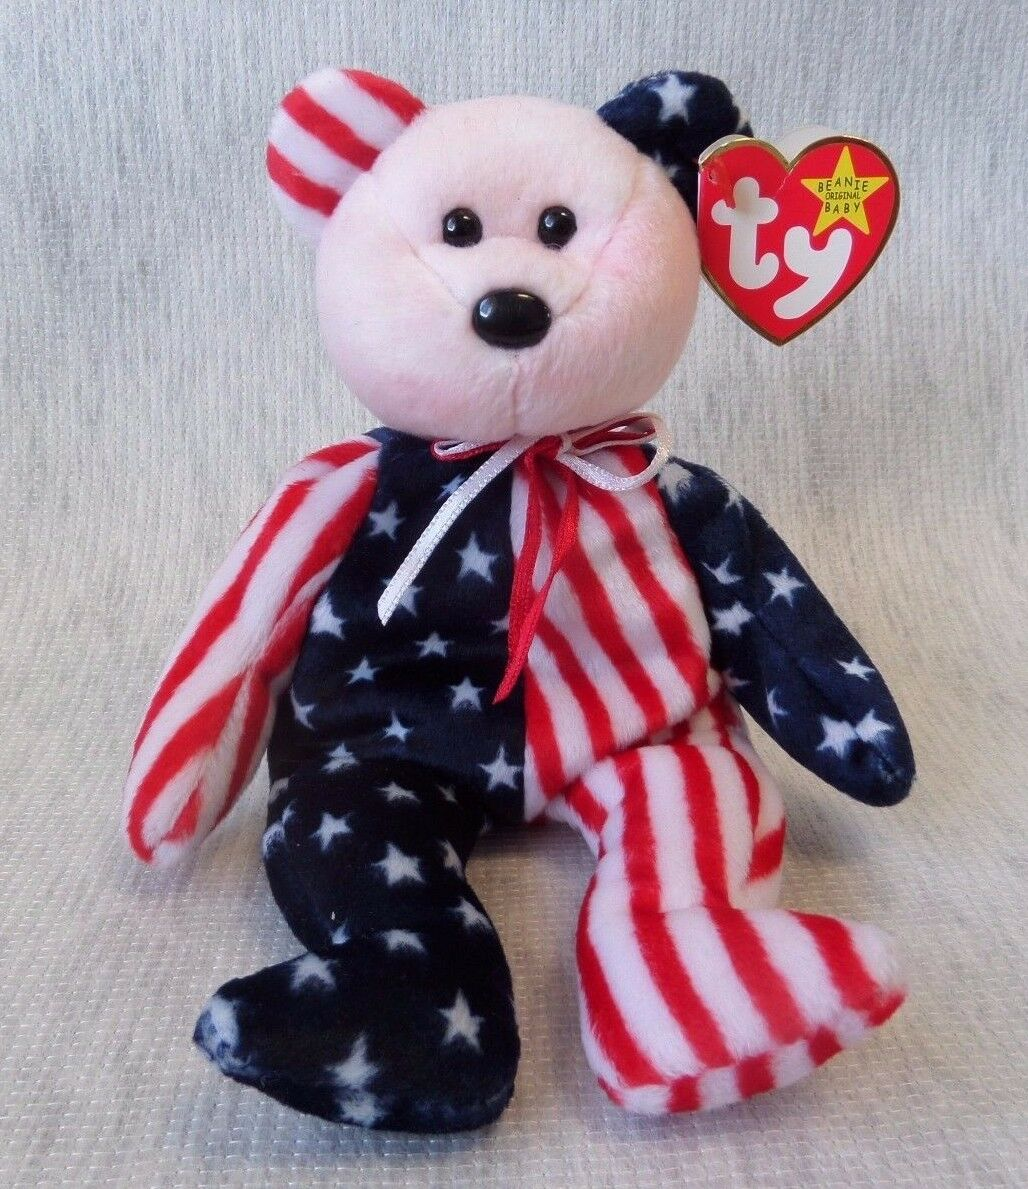 VINTAGE BEANIE BABY RARE PINK FACE BEAR  SPANGLE   MINT CONDITION   RETIRED